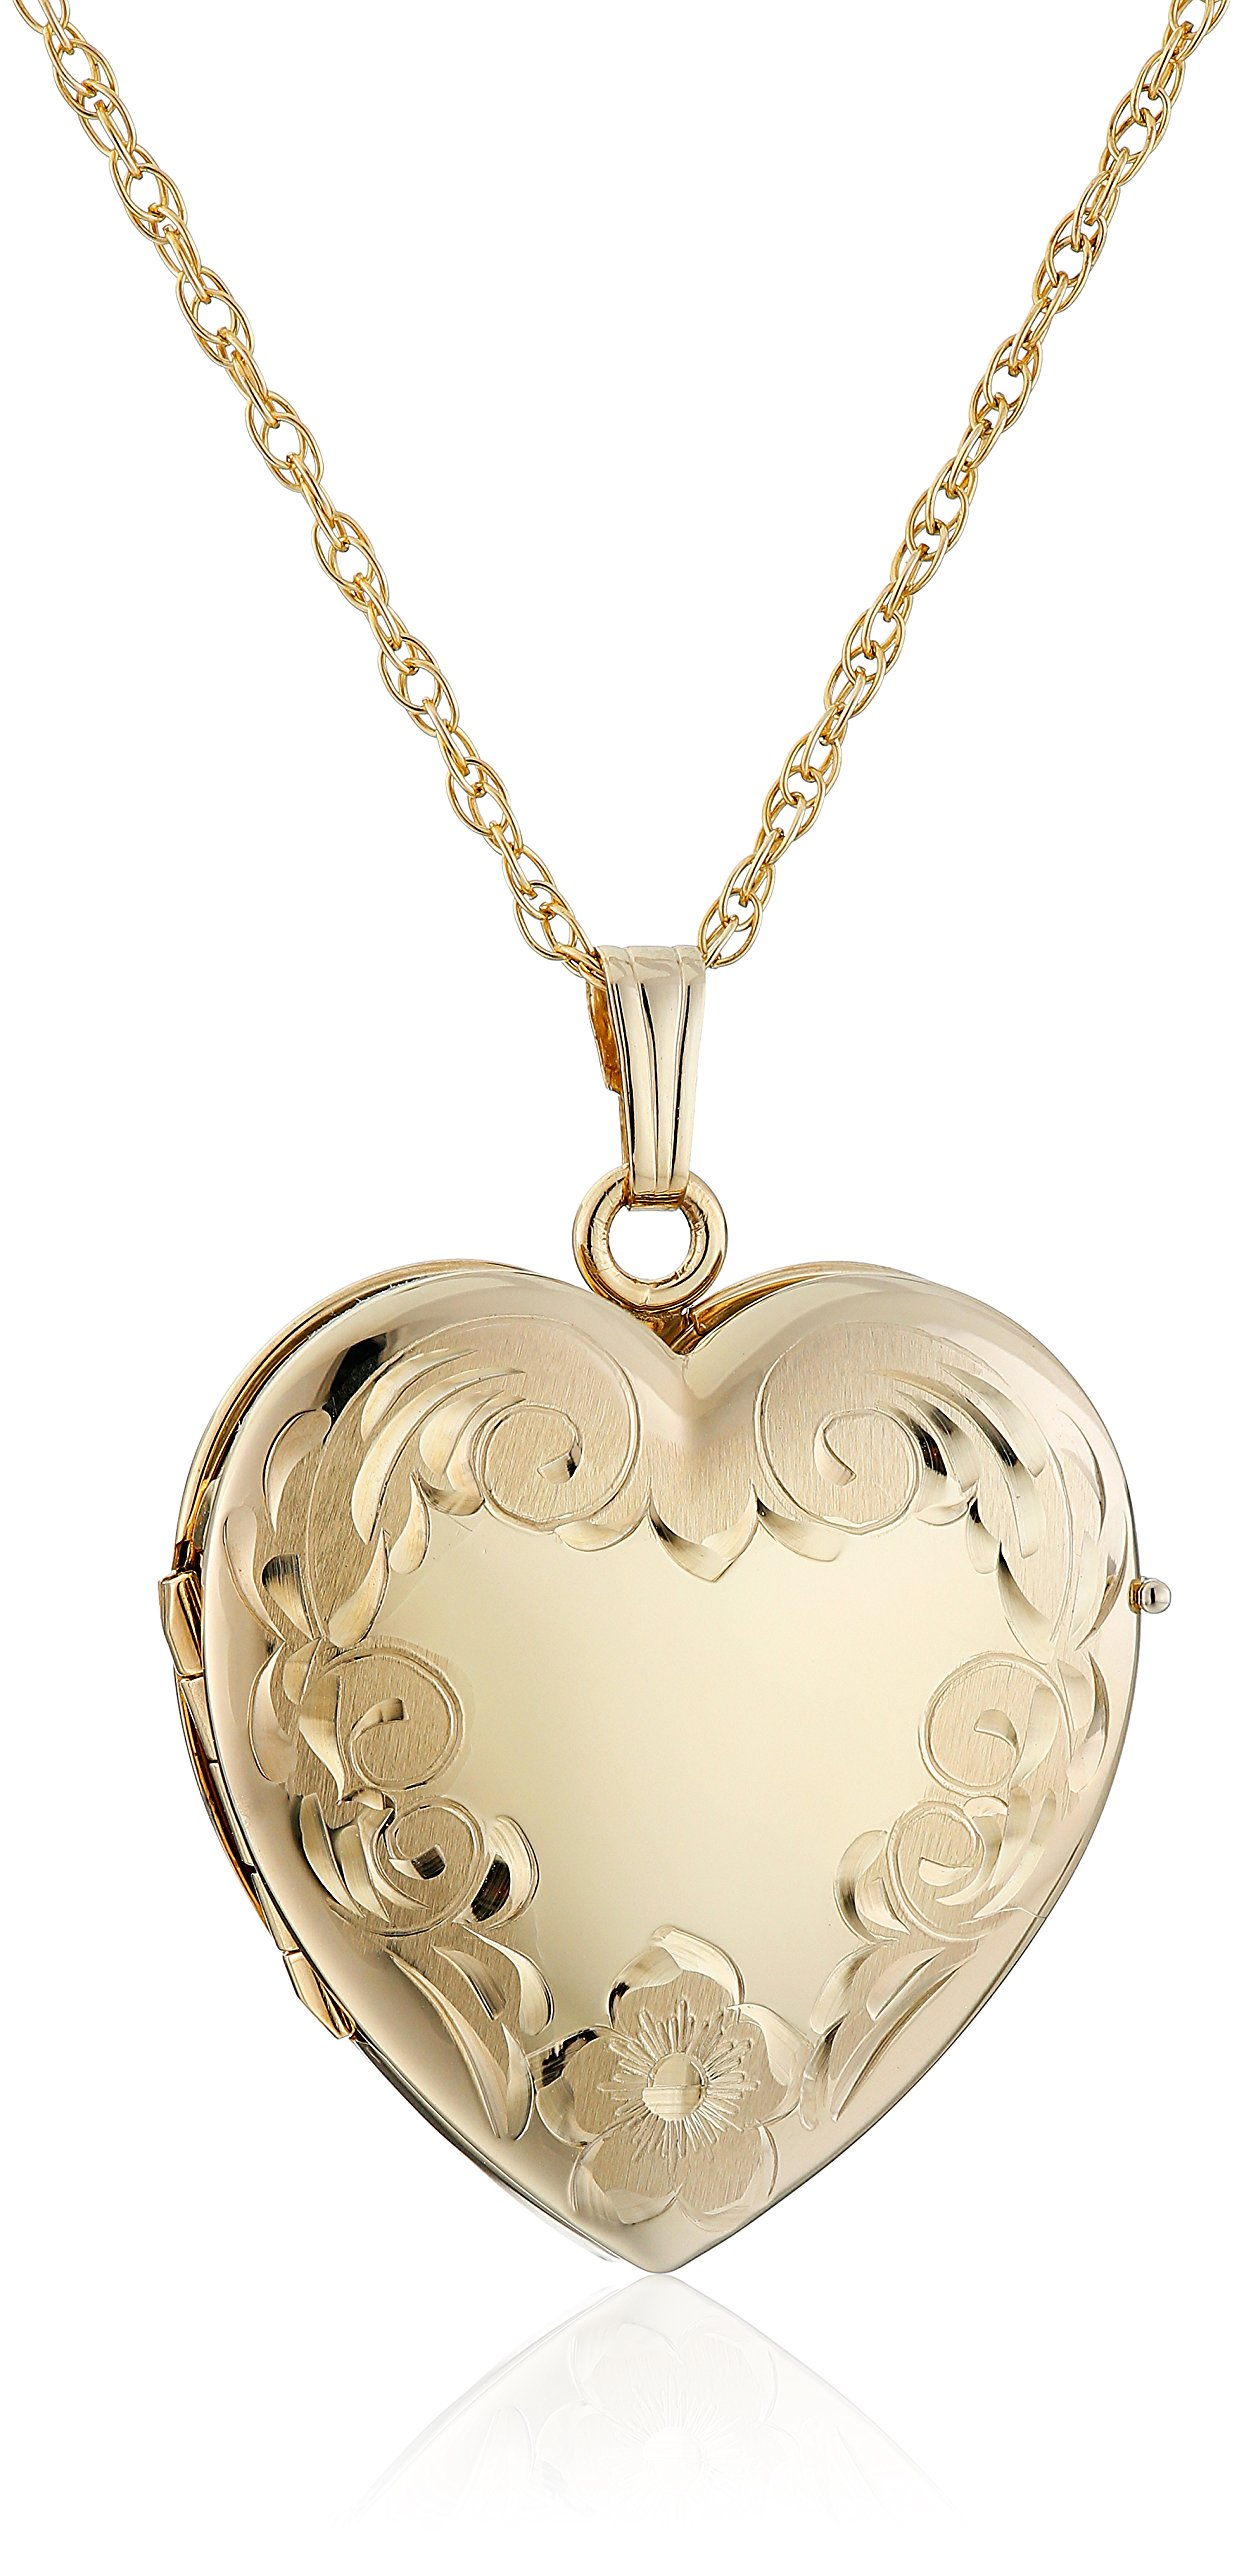 14k Yellow Gold-Filled Engraved Four-Picture Heart Locket Necklace, 20'' by Amazon Collection